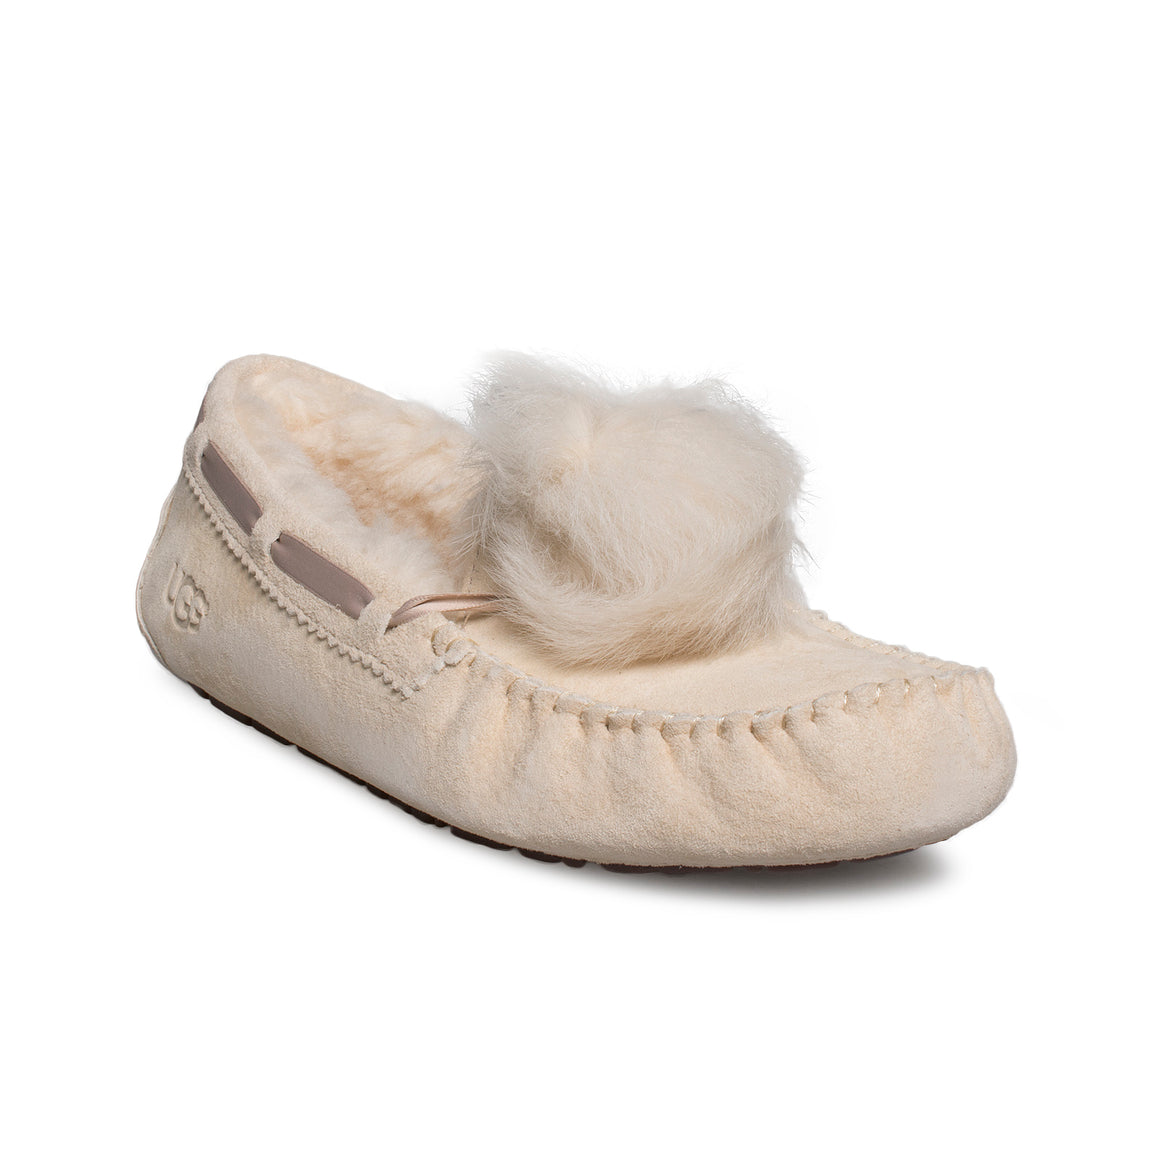 UGG Dakota Pom Pom Cream Slippers - Women's